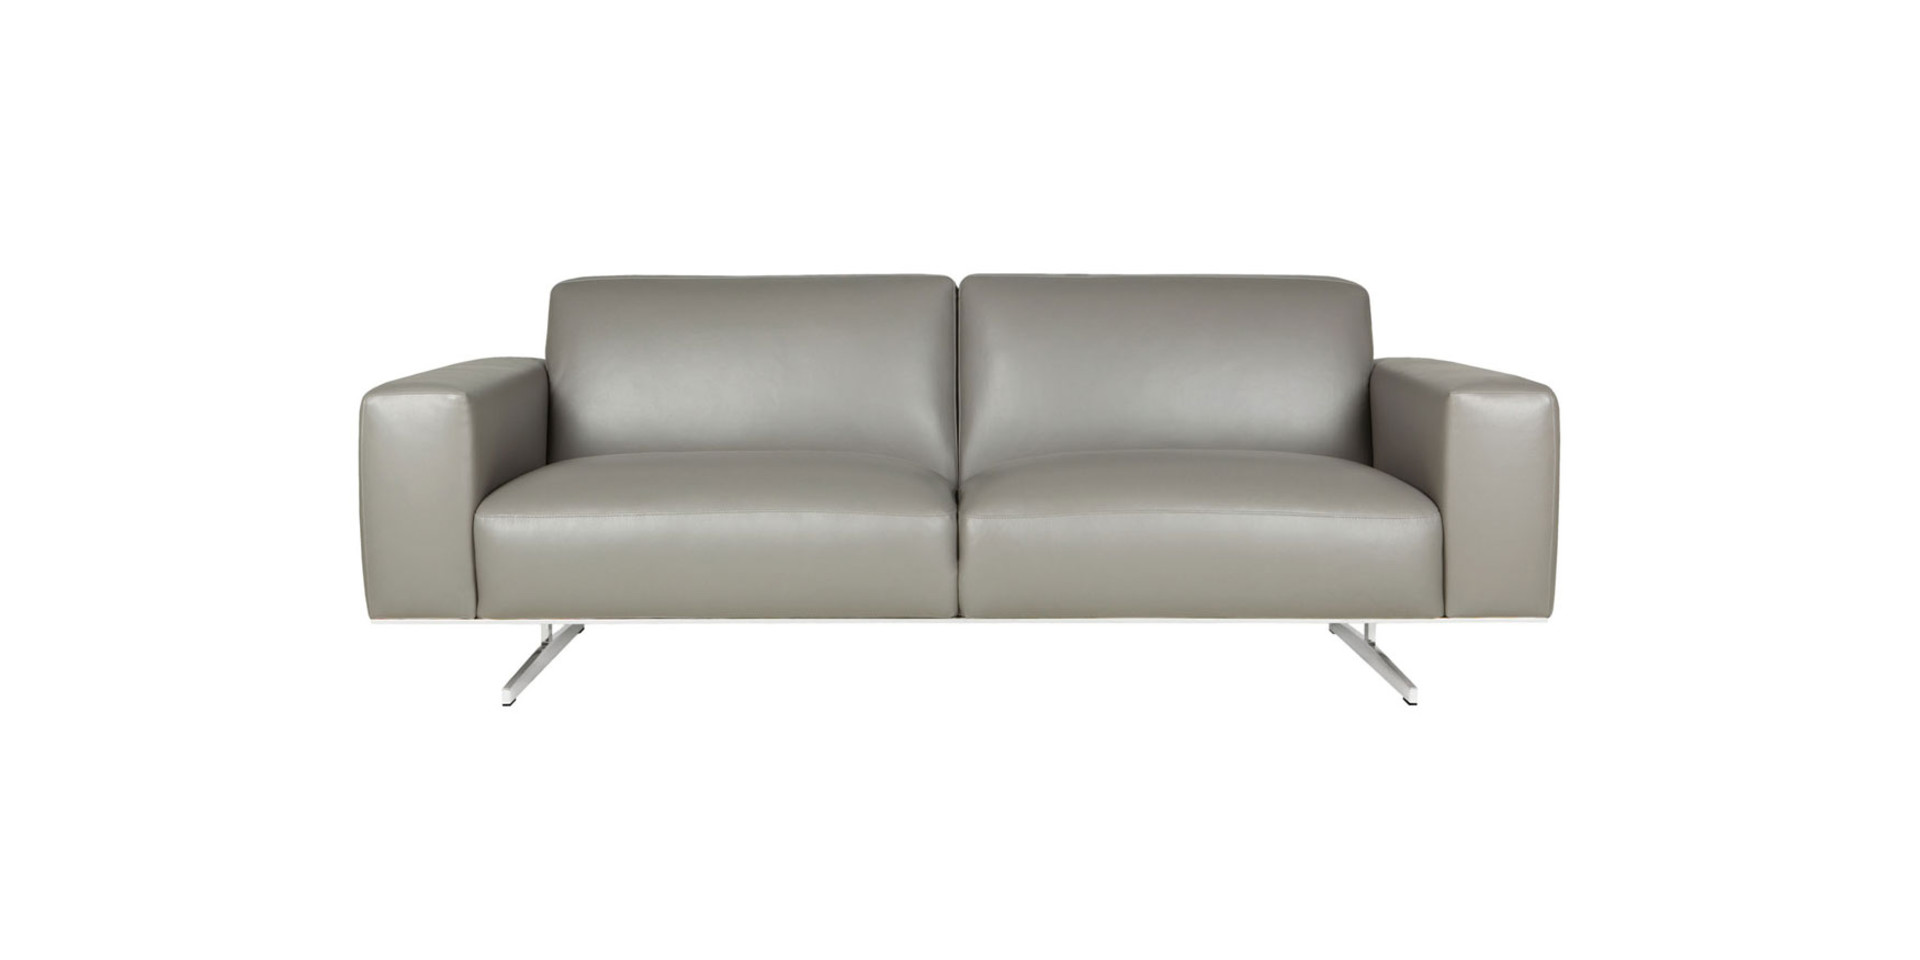 sits-linus-canape-3seater_matrix_dark_grey_1